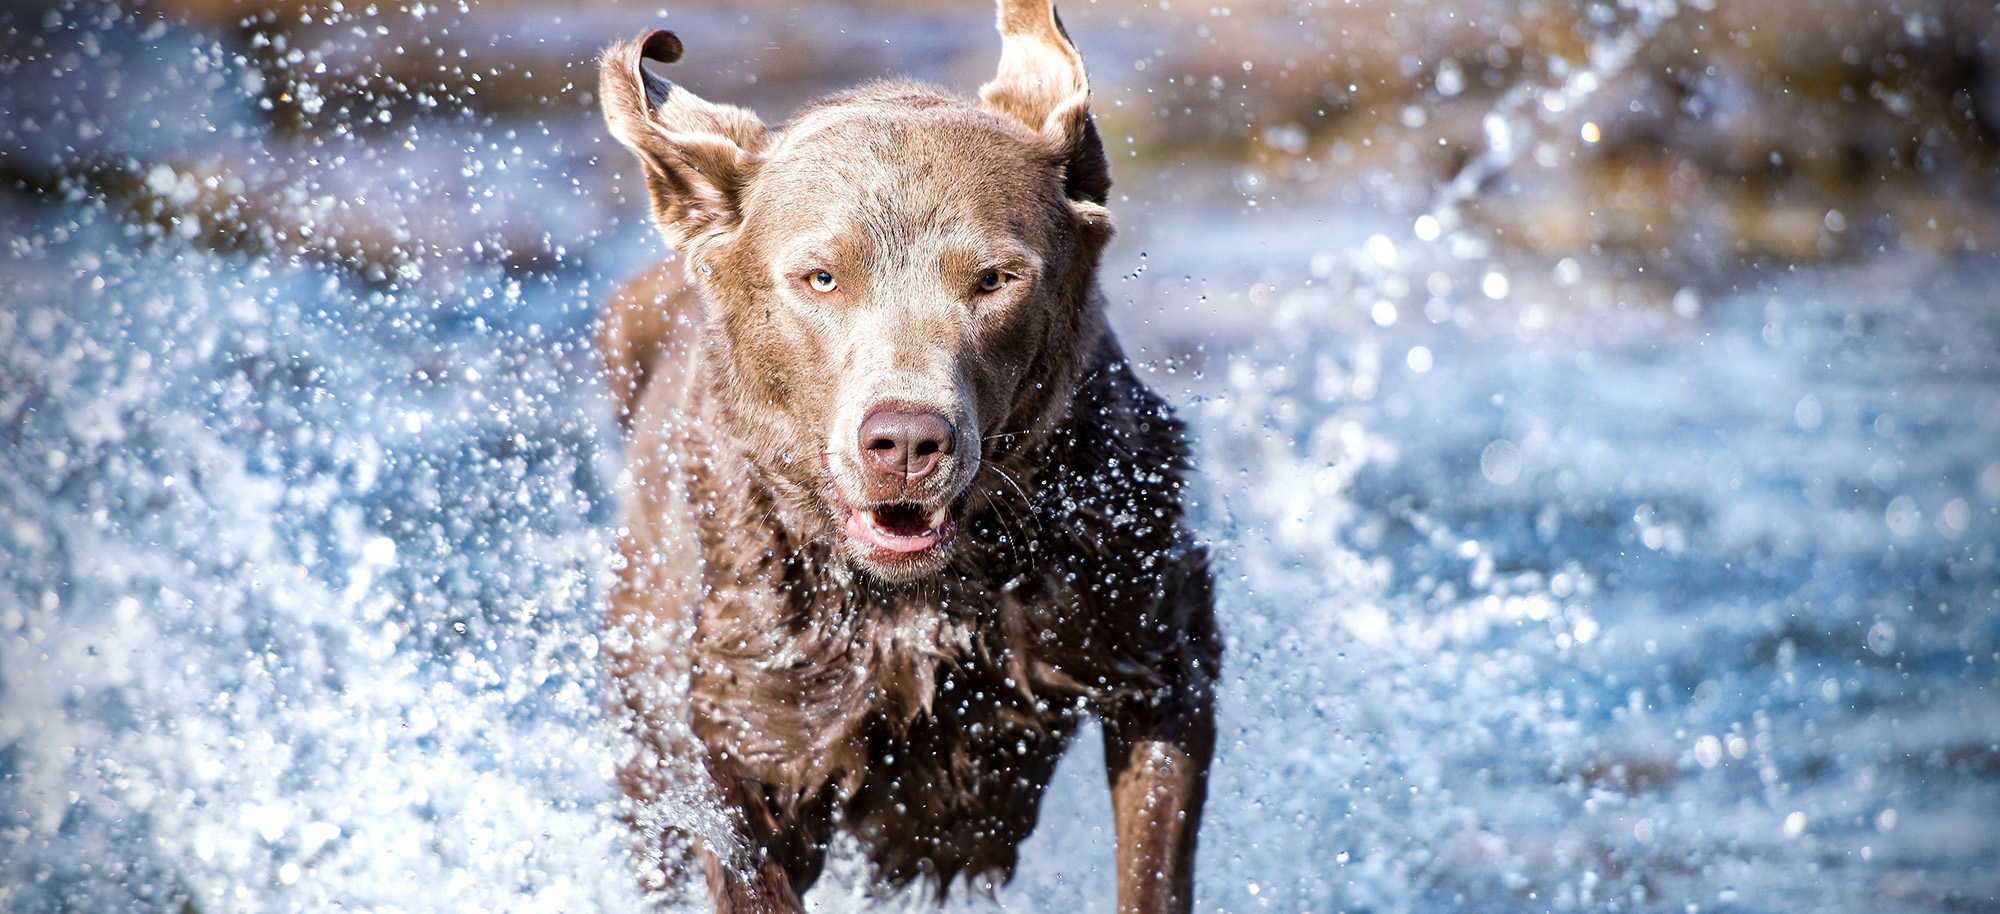 large brown dog running through water and splashing